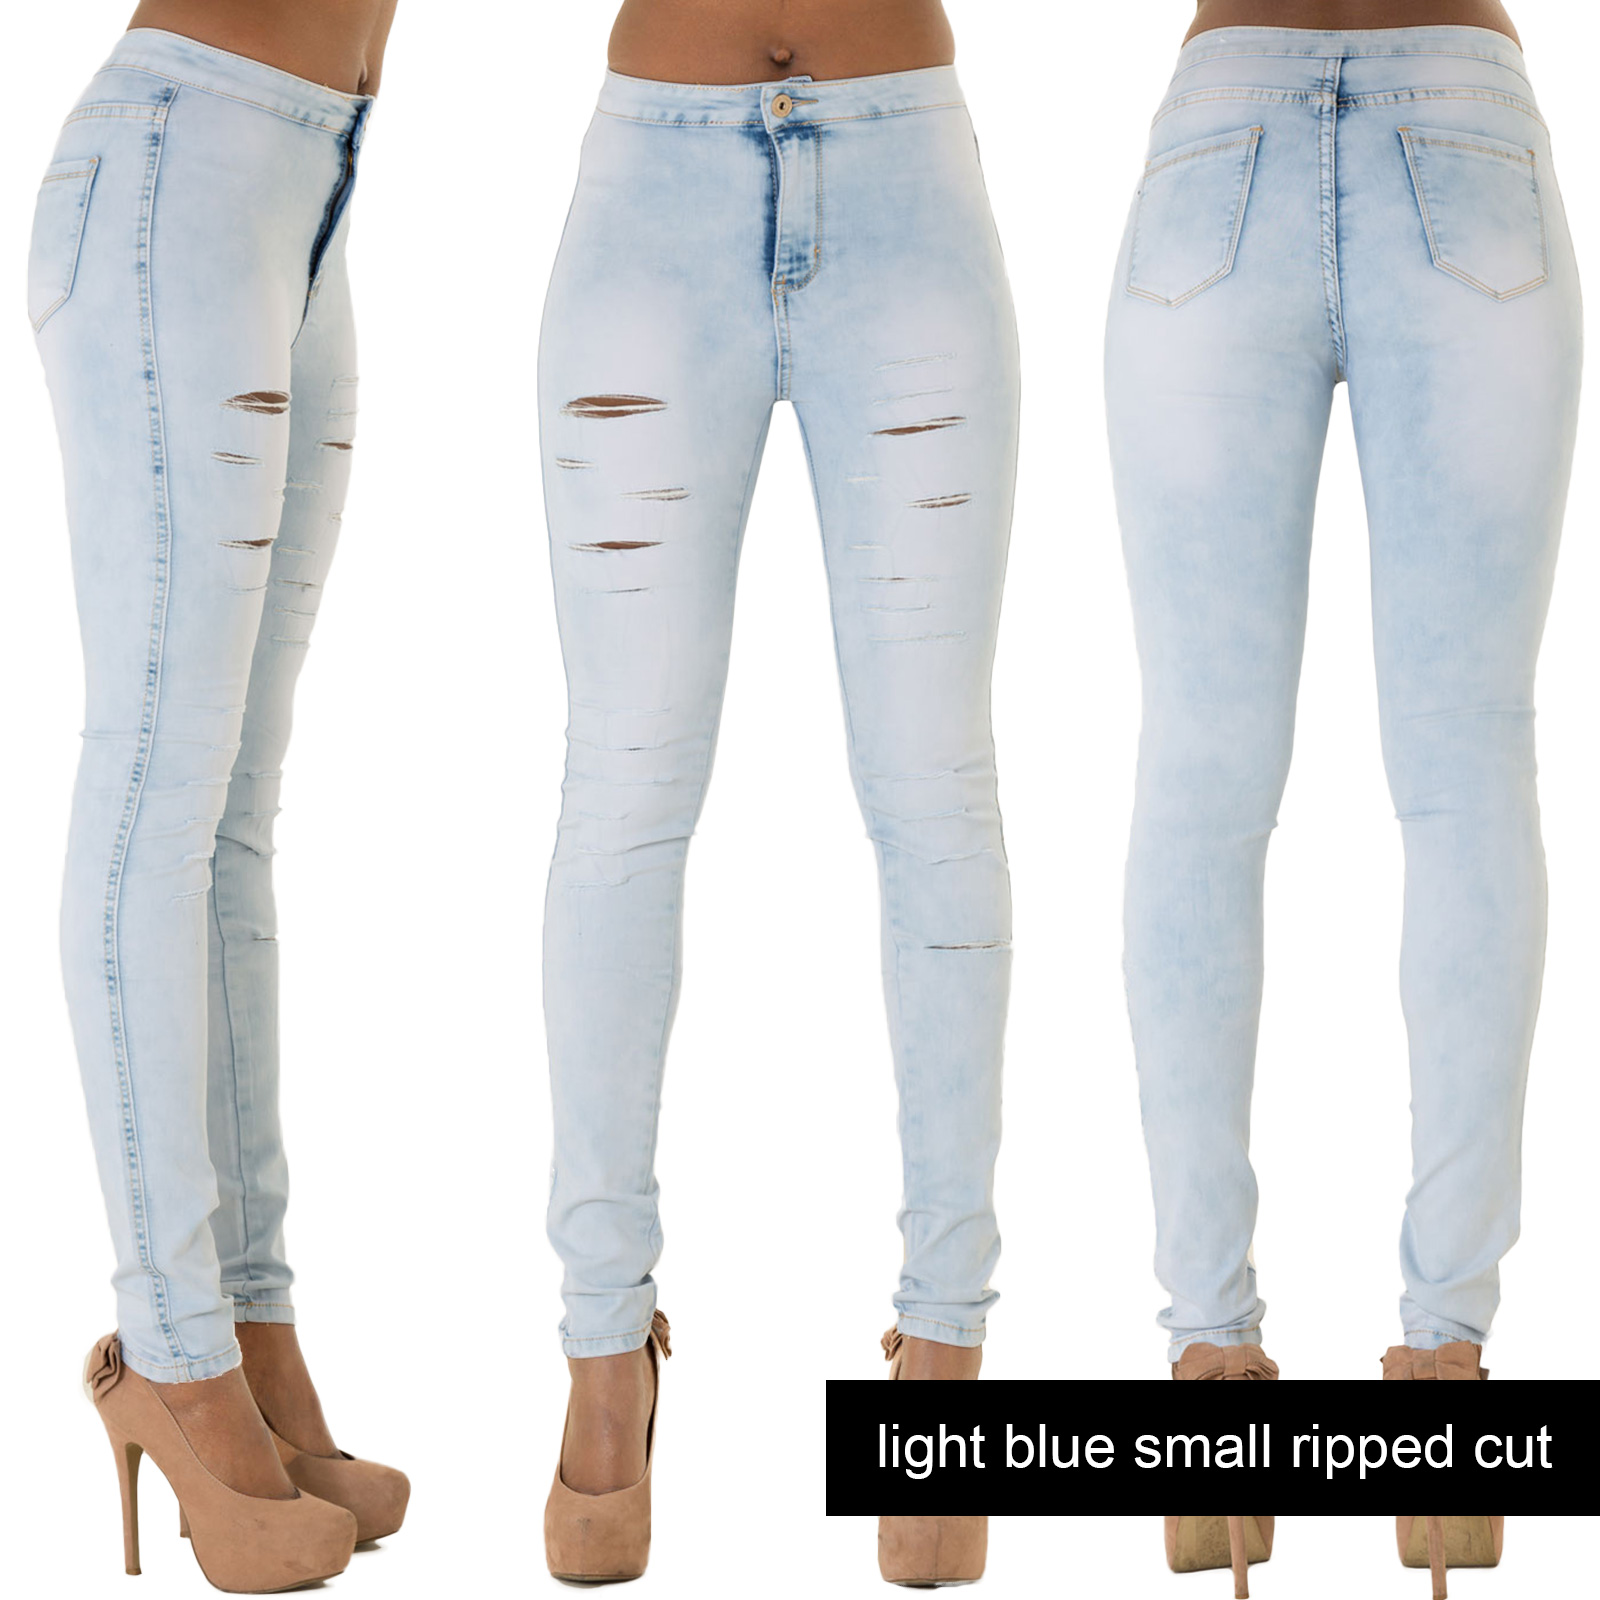 WOMENS-RIPPED-JEANS-STRETCH-FADED-SLIM-FIT-LADIES-SKINNY-DENIM-SIZE-6-8-10-12-14